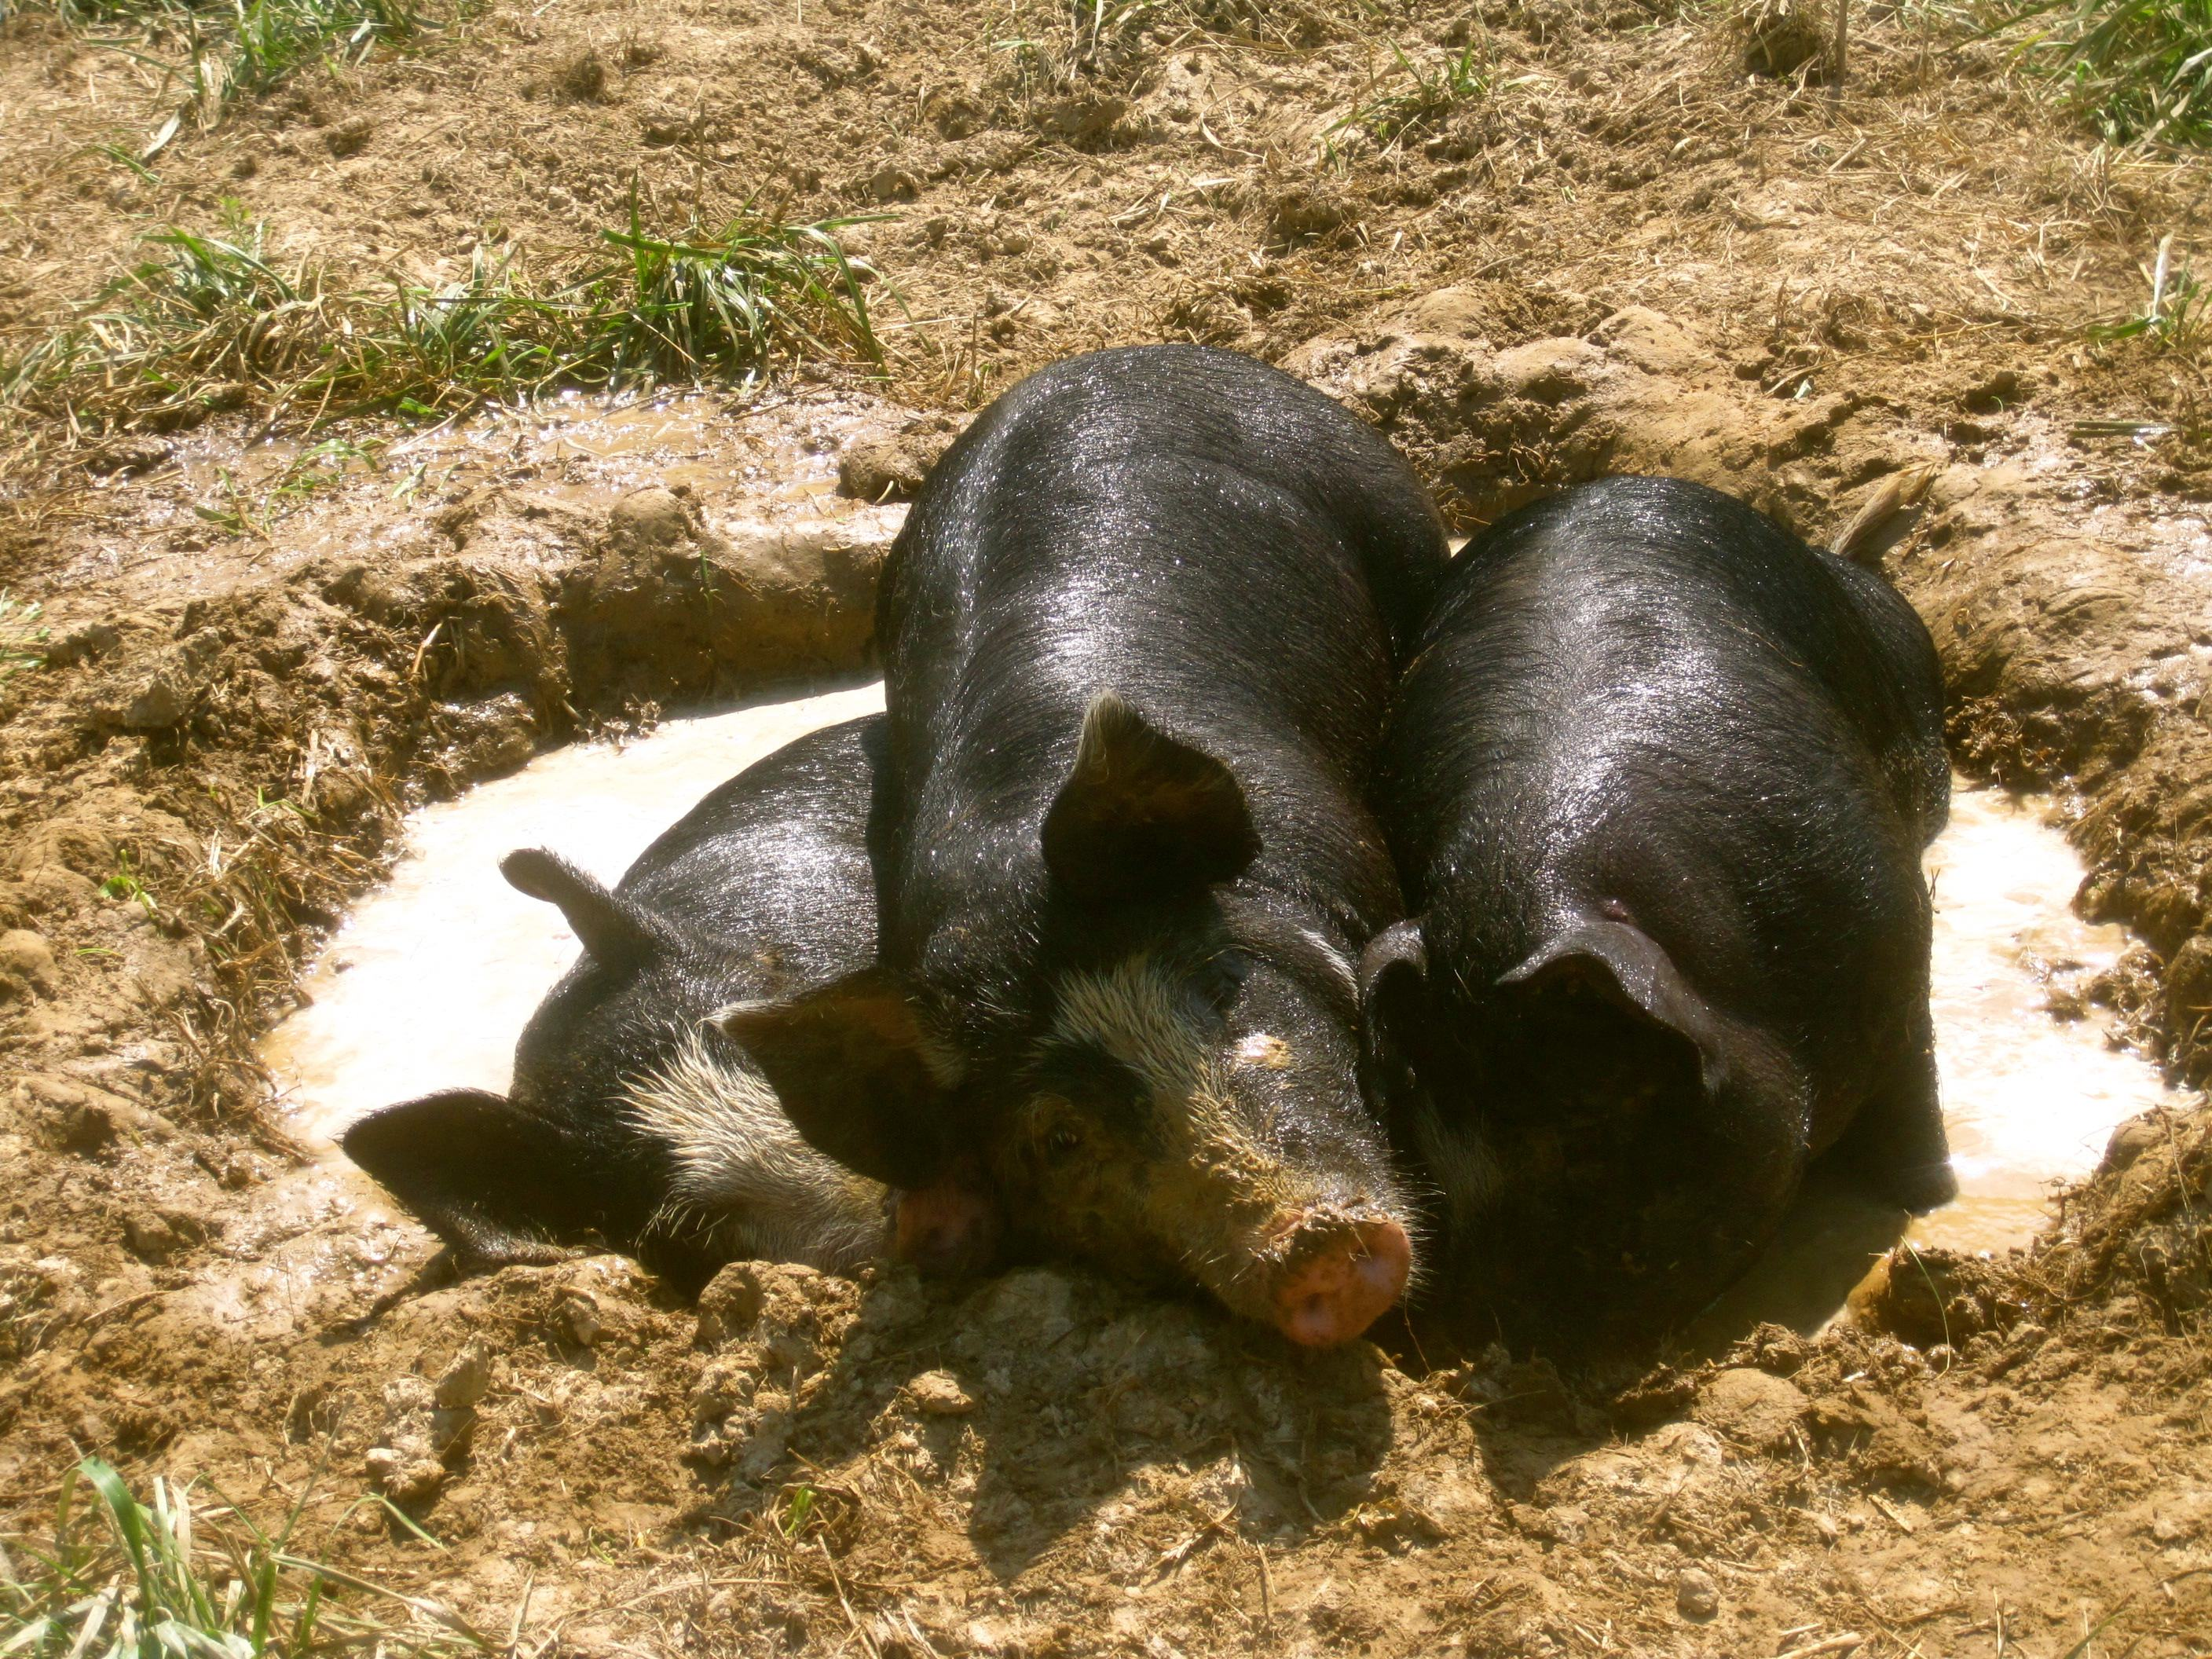 The Salad Garden's hogs remind us why we care!